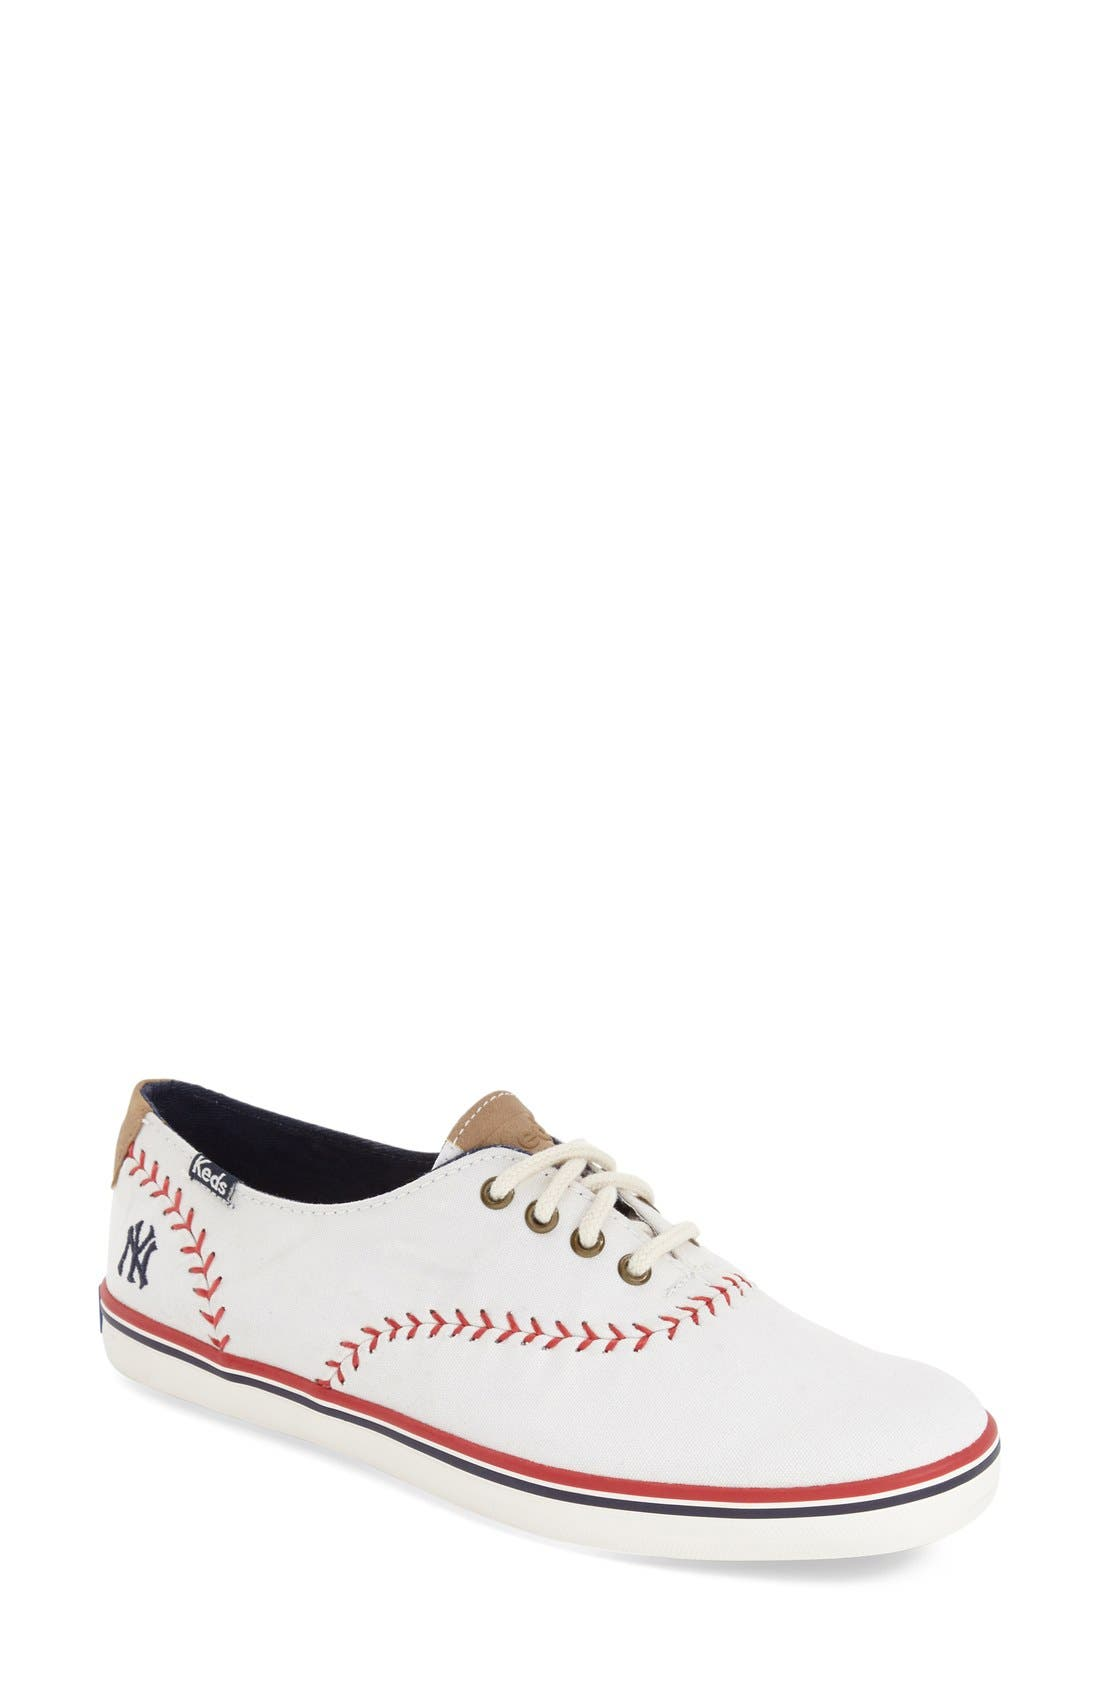 'Champion - MLB Pennant' Sneaker,                         Main,                         color, 100